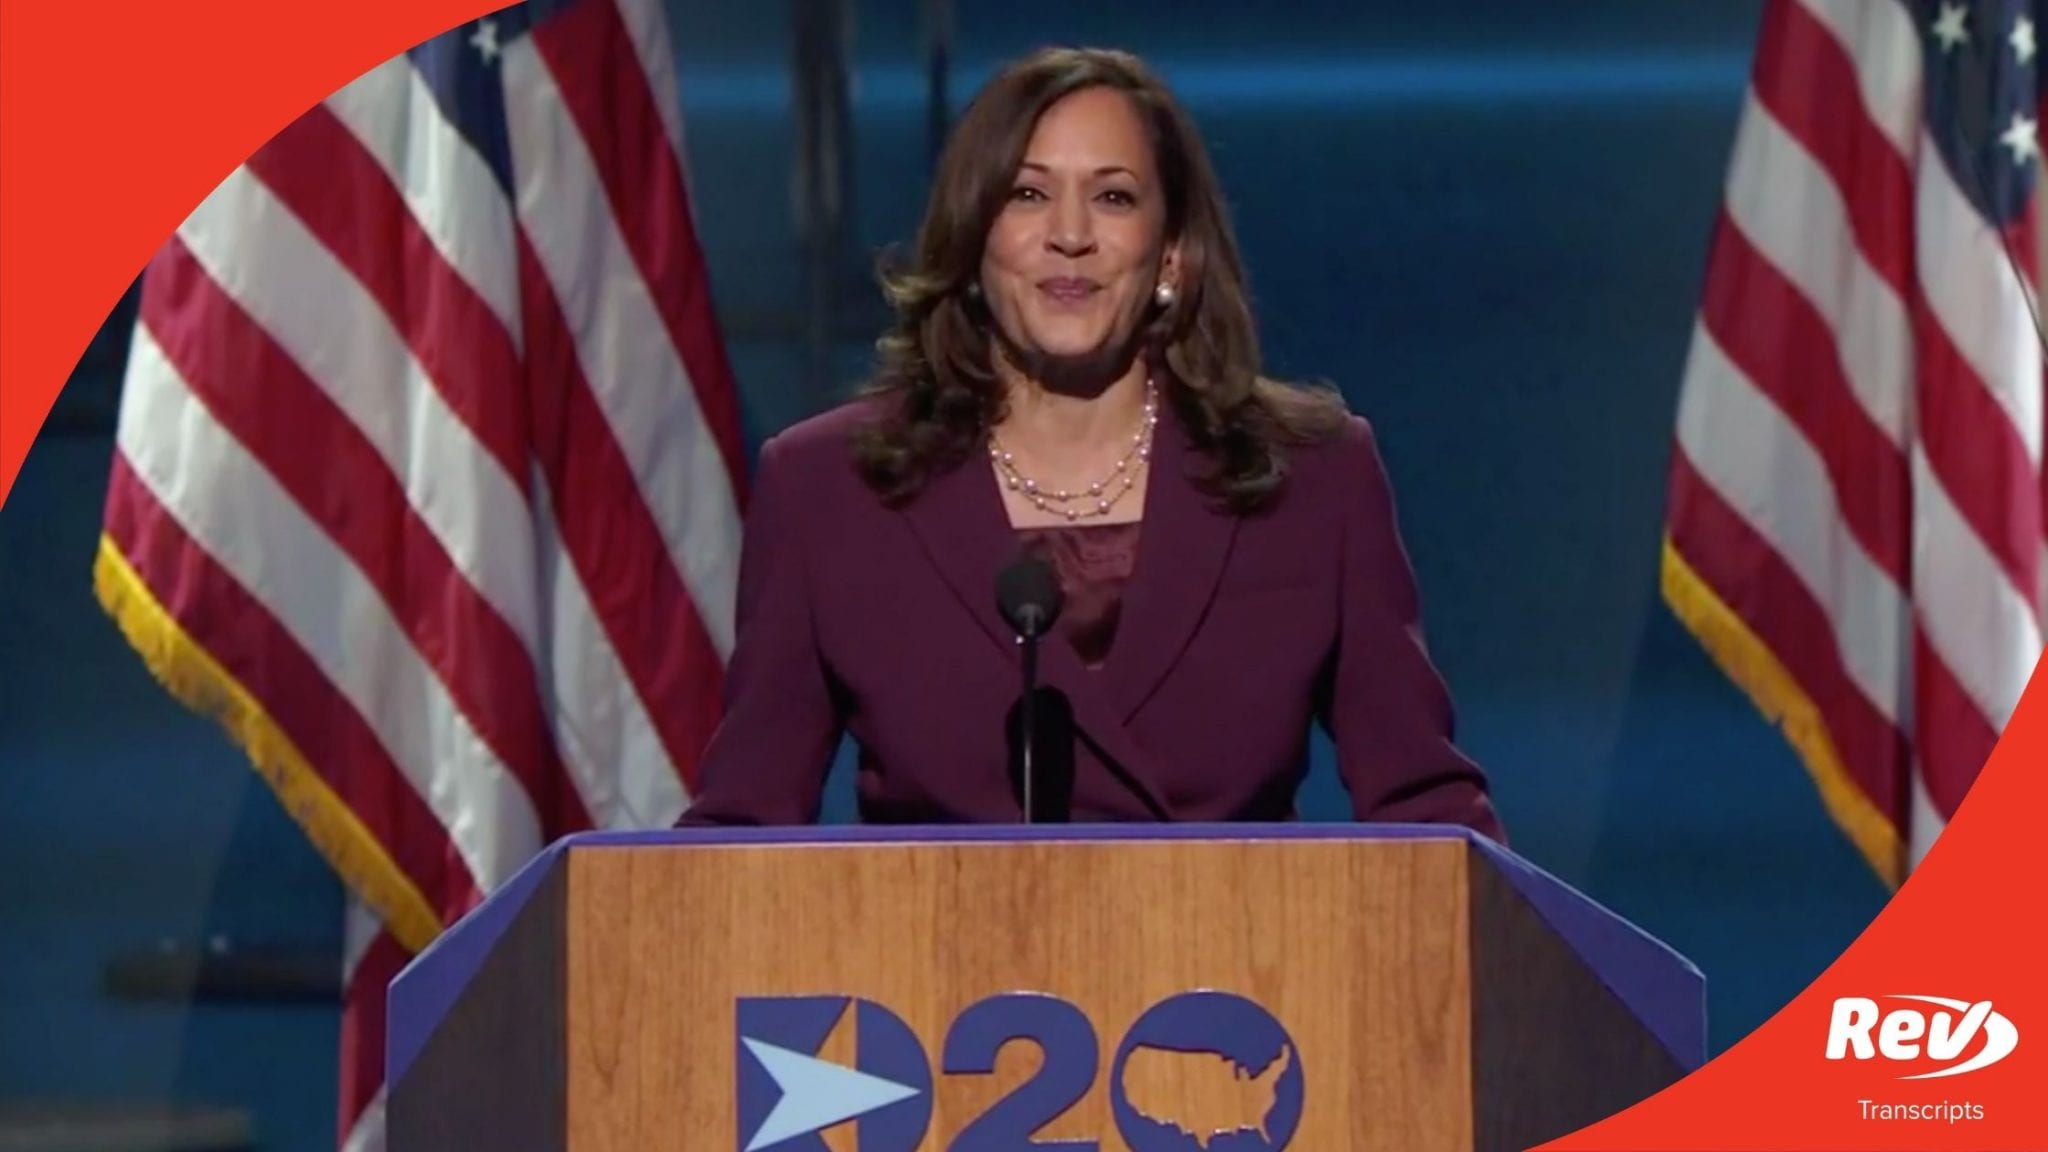 Kamala Harris 2020 DNC Speech Transcript